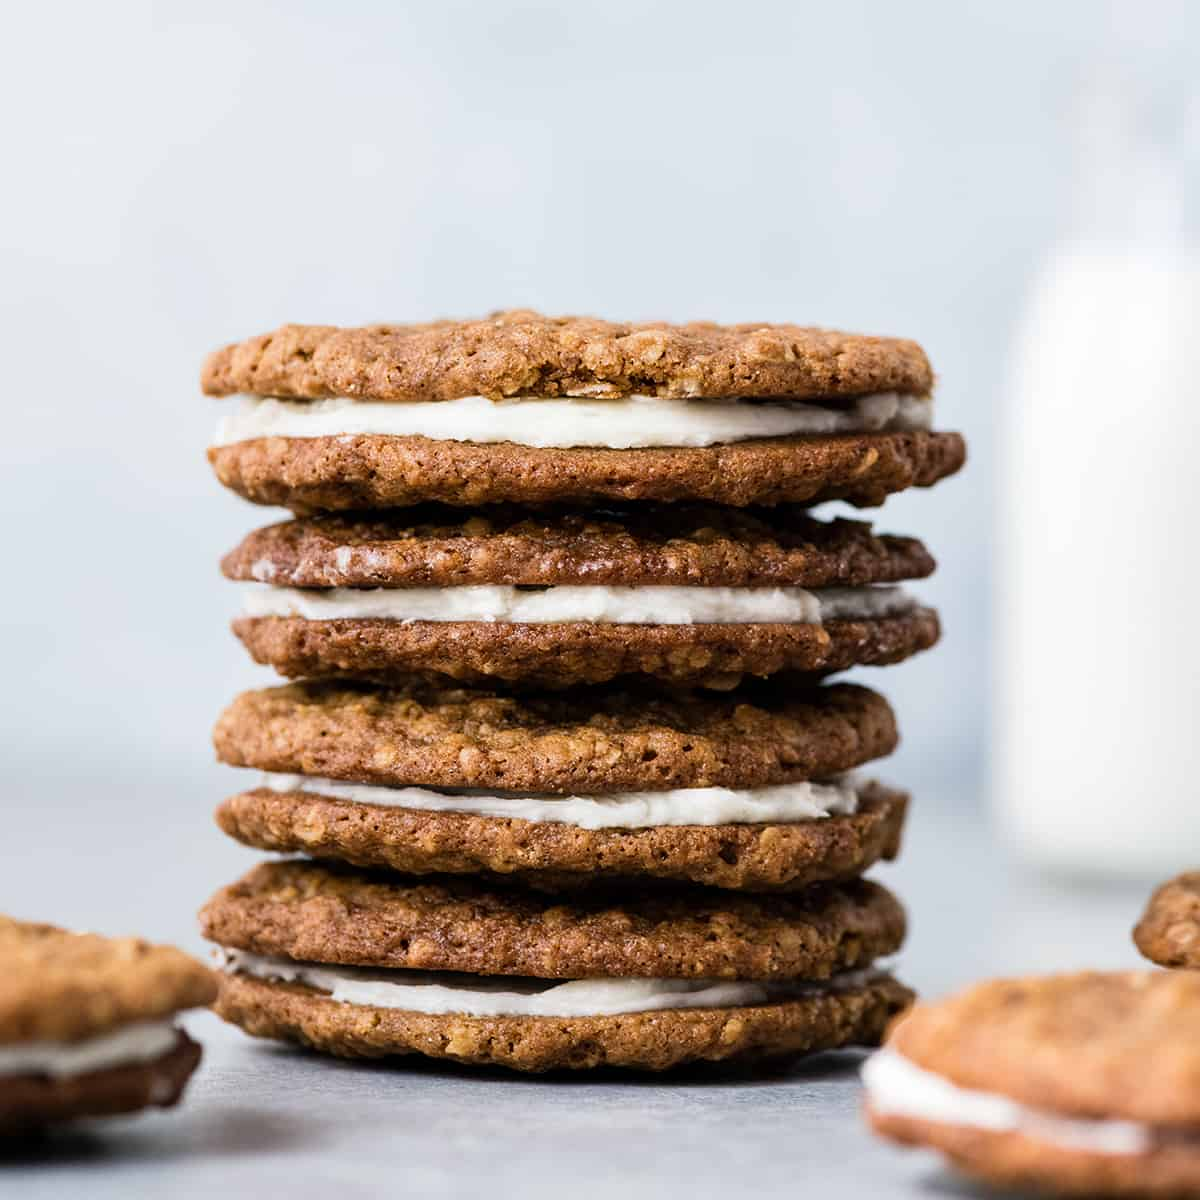 front view of a stack of four homemade oatmeal cream pies